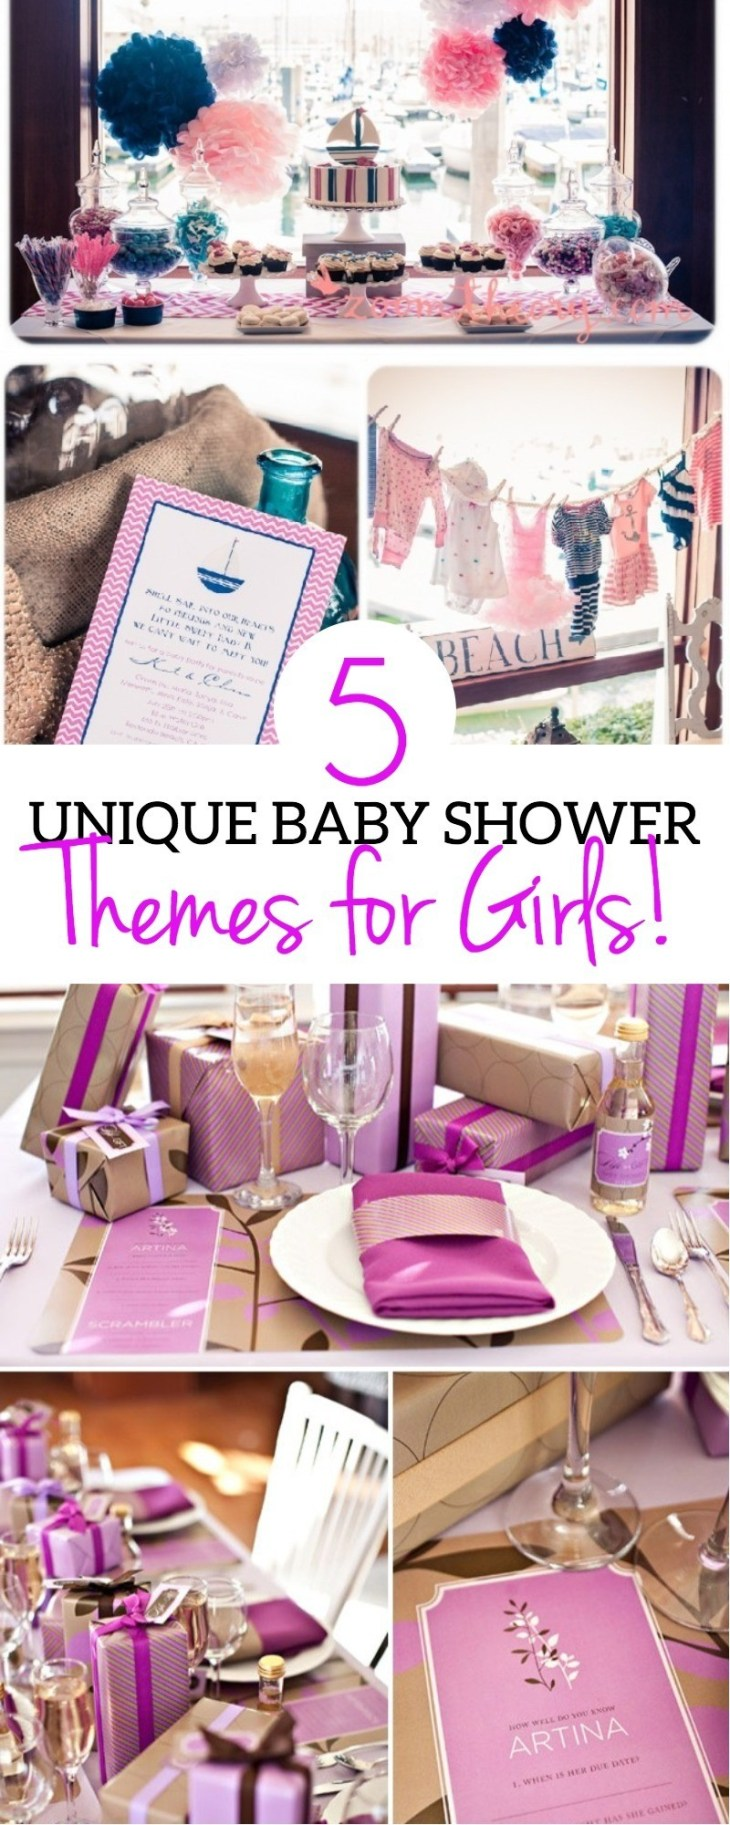 5 Unique Baby Shower Ideas For Girls and Cute Themes - These Are Beautiful  | babyshower